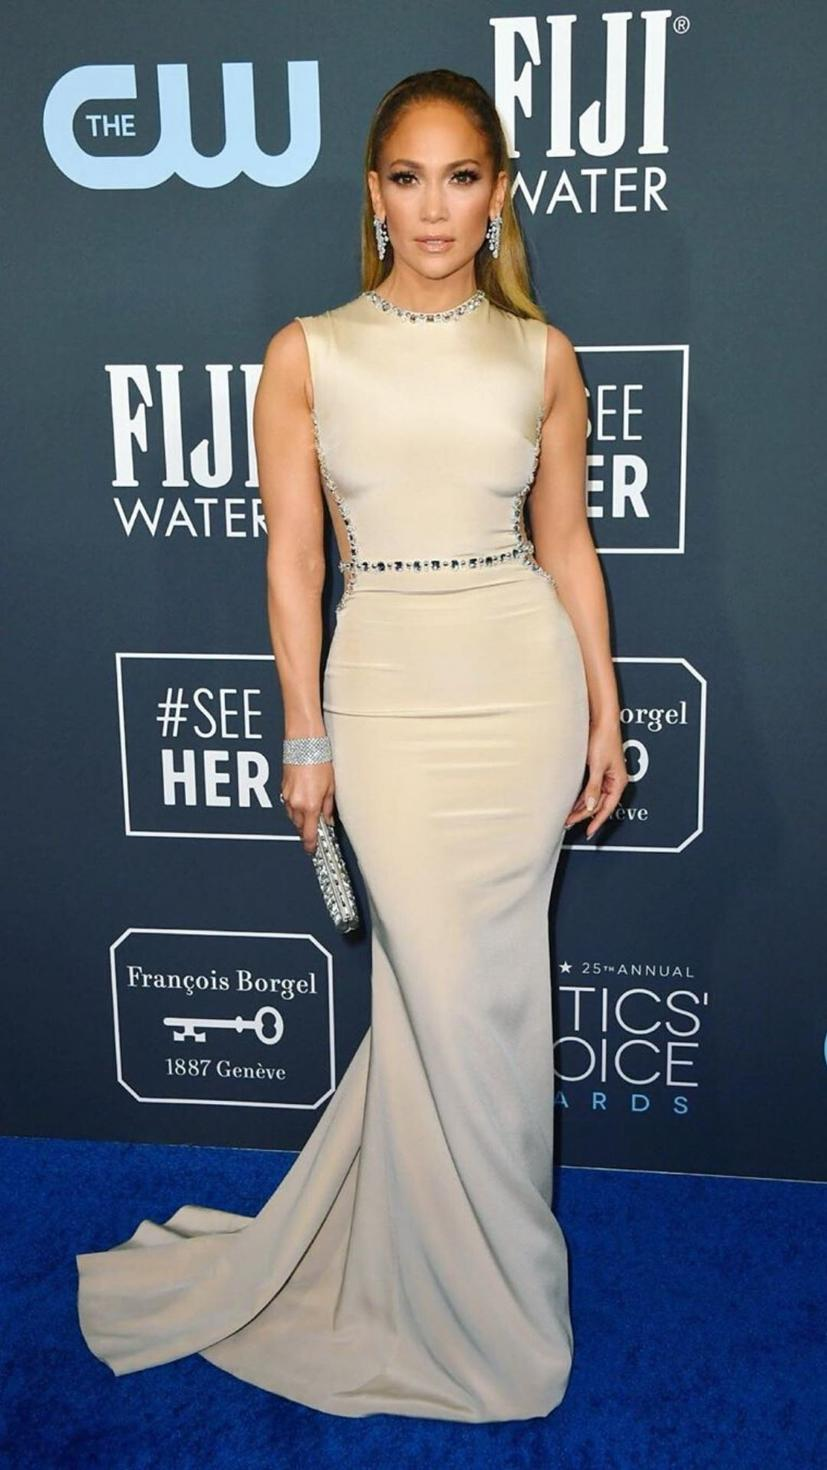 JLo rocks up to the Critics Choice Awards in a Georges Hobeika gown, Harry Winston jewels and Jimmy Choo shoes.